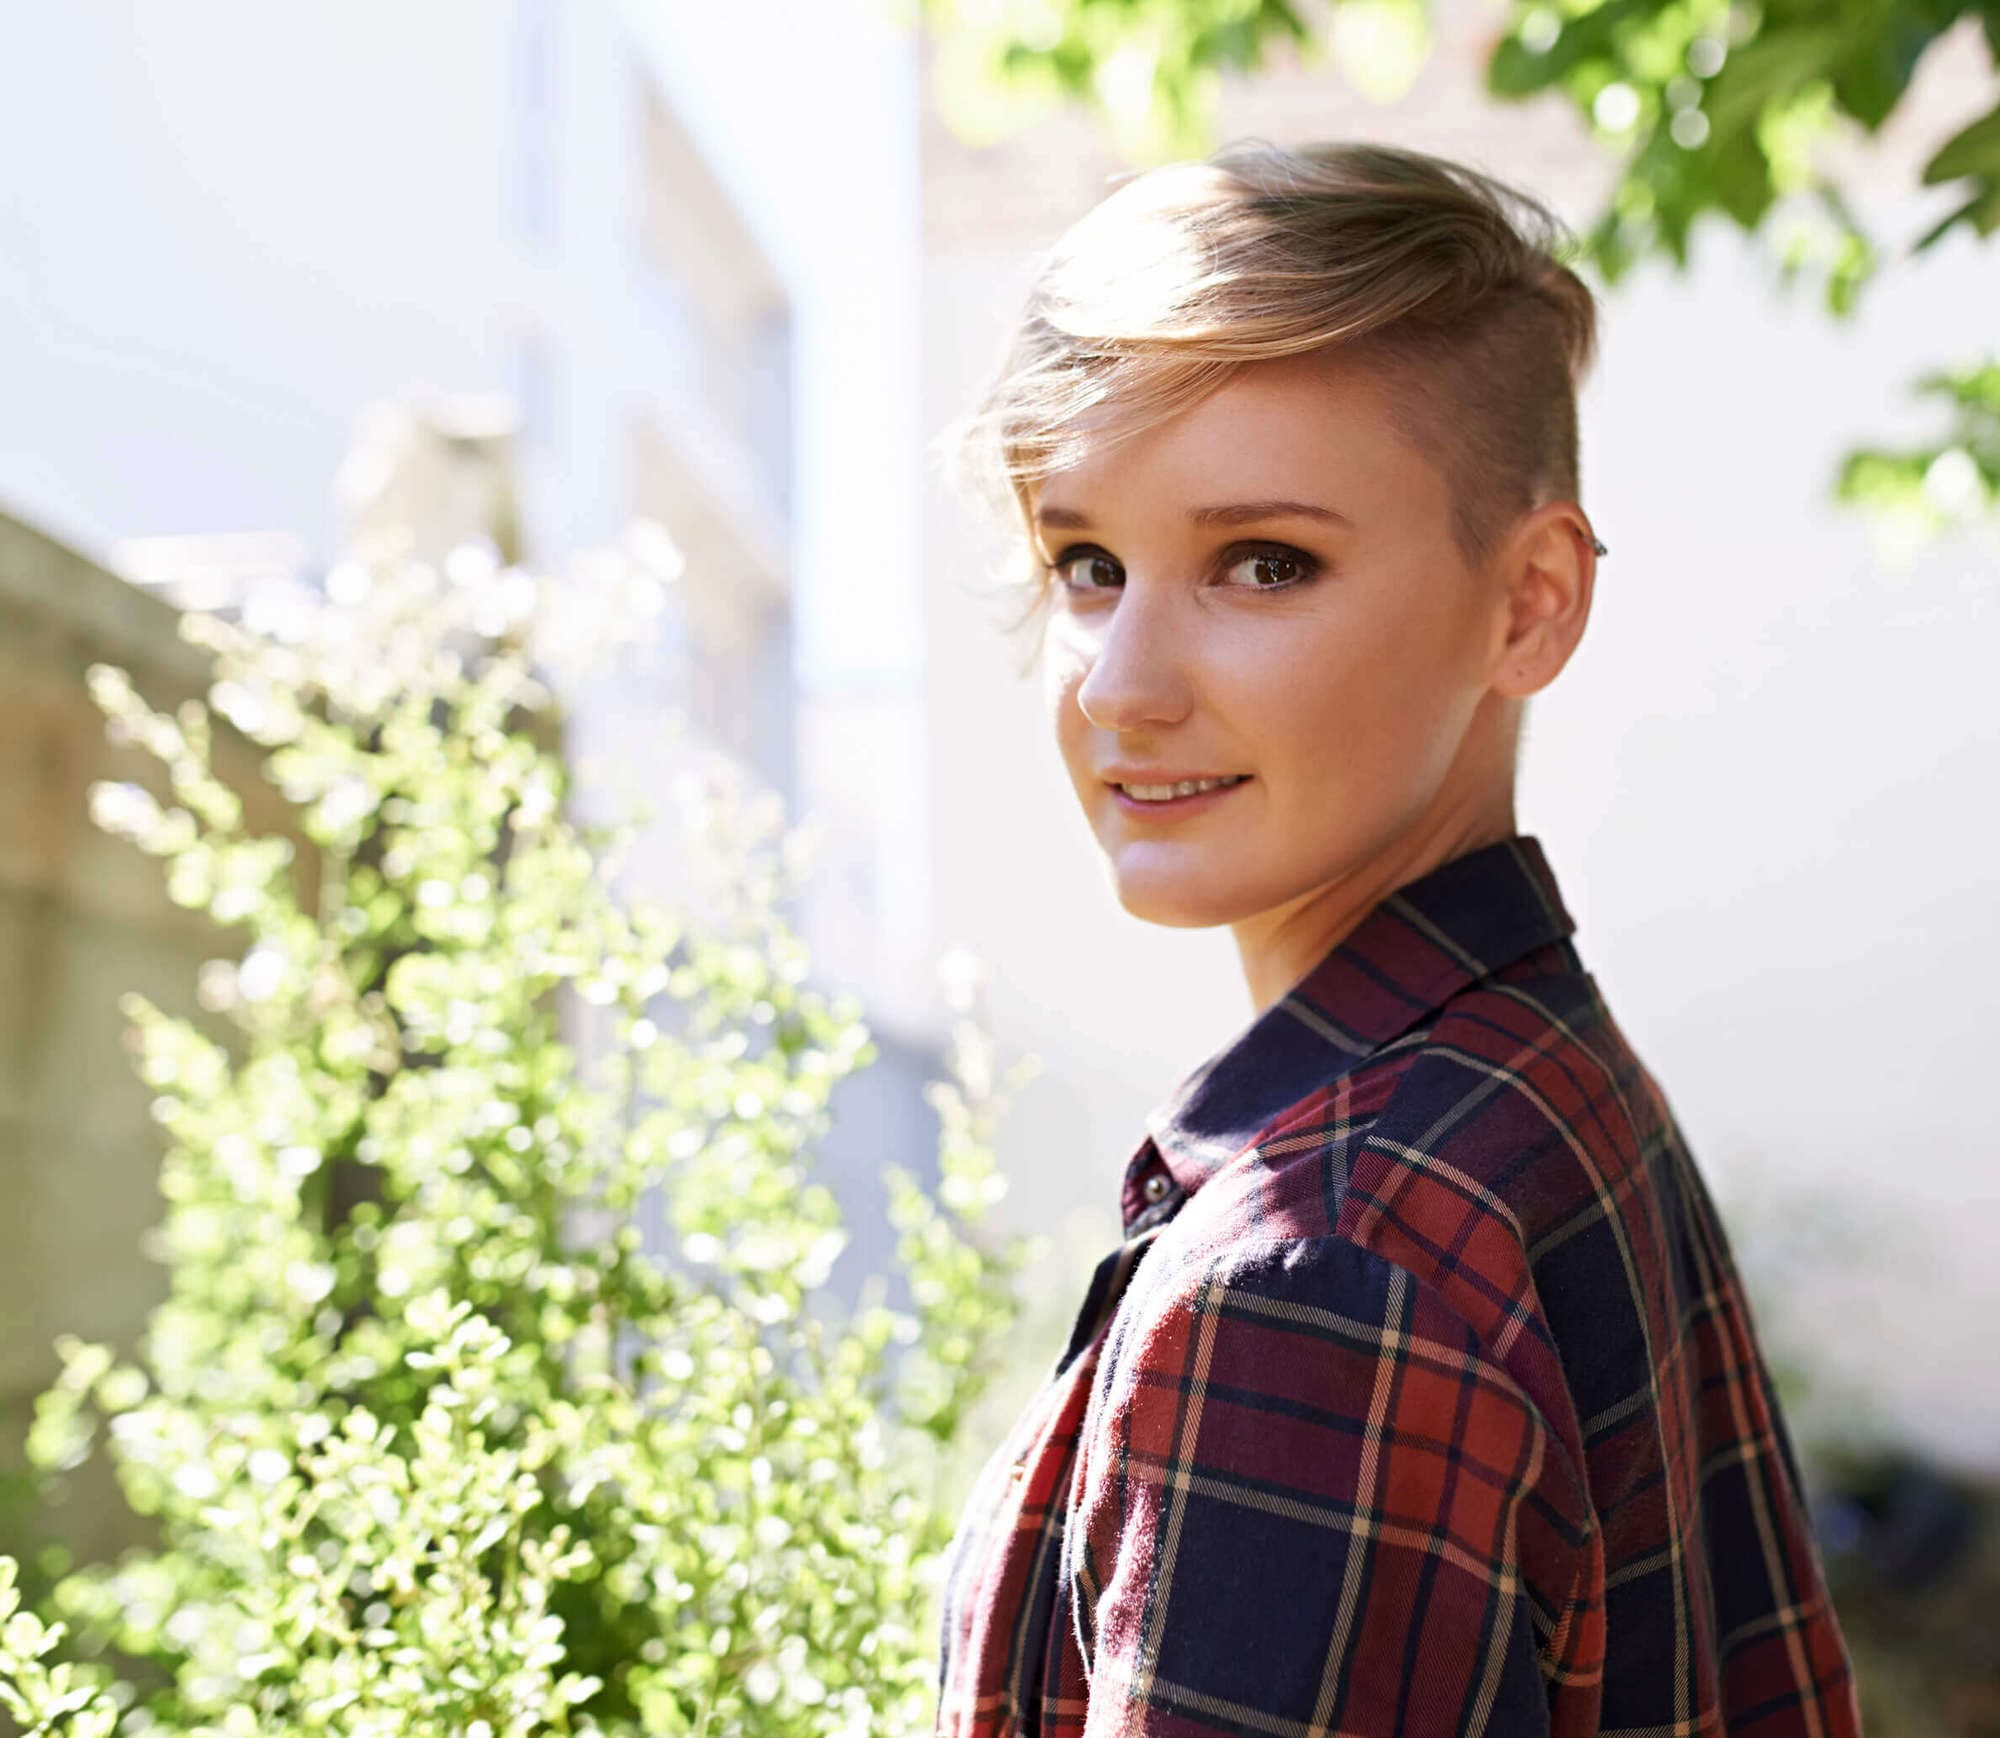 woman with asymmetrical pixie cut with undercut side shave